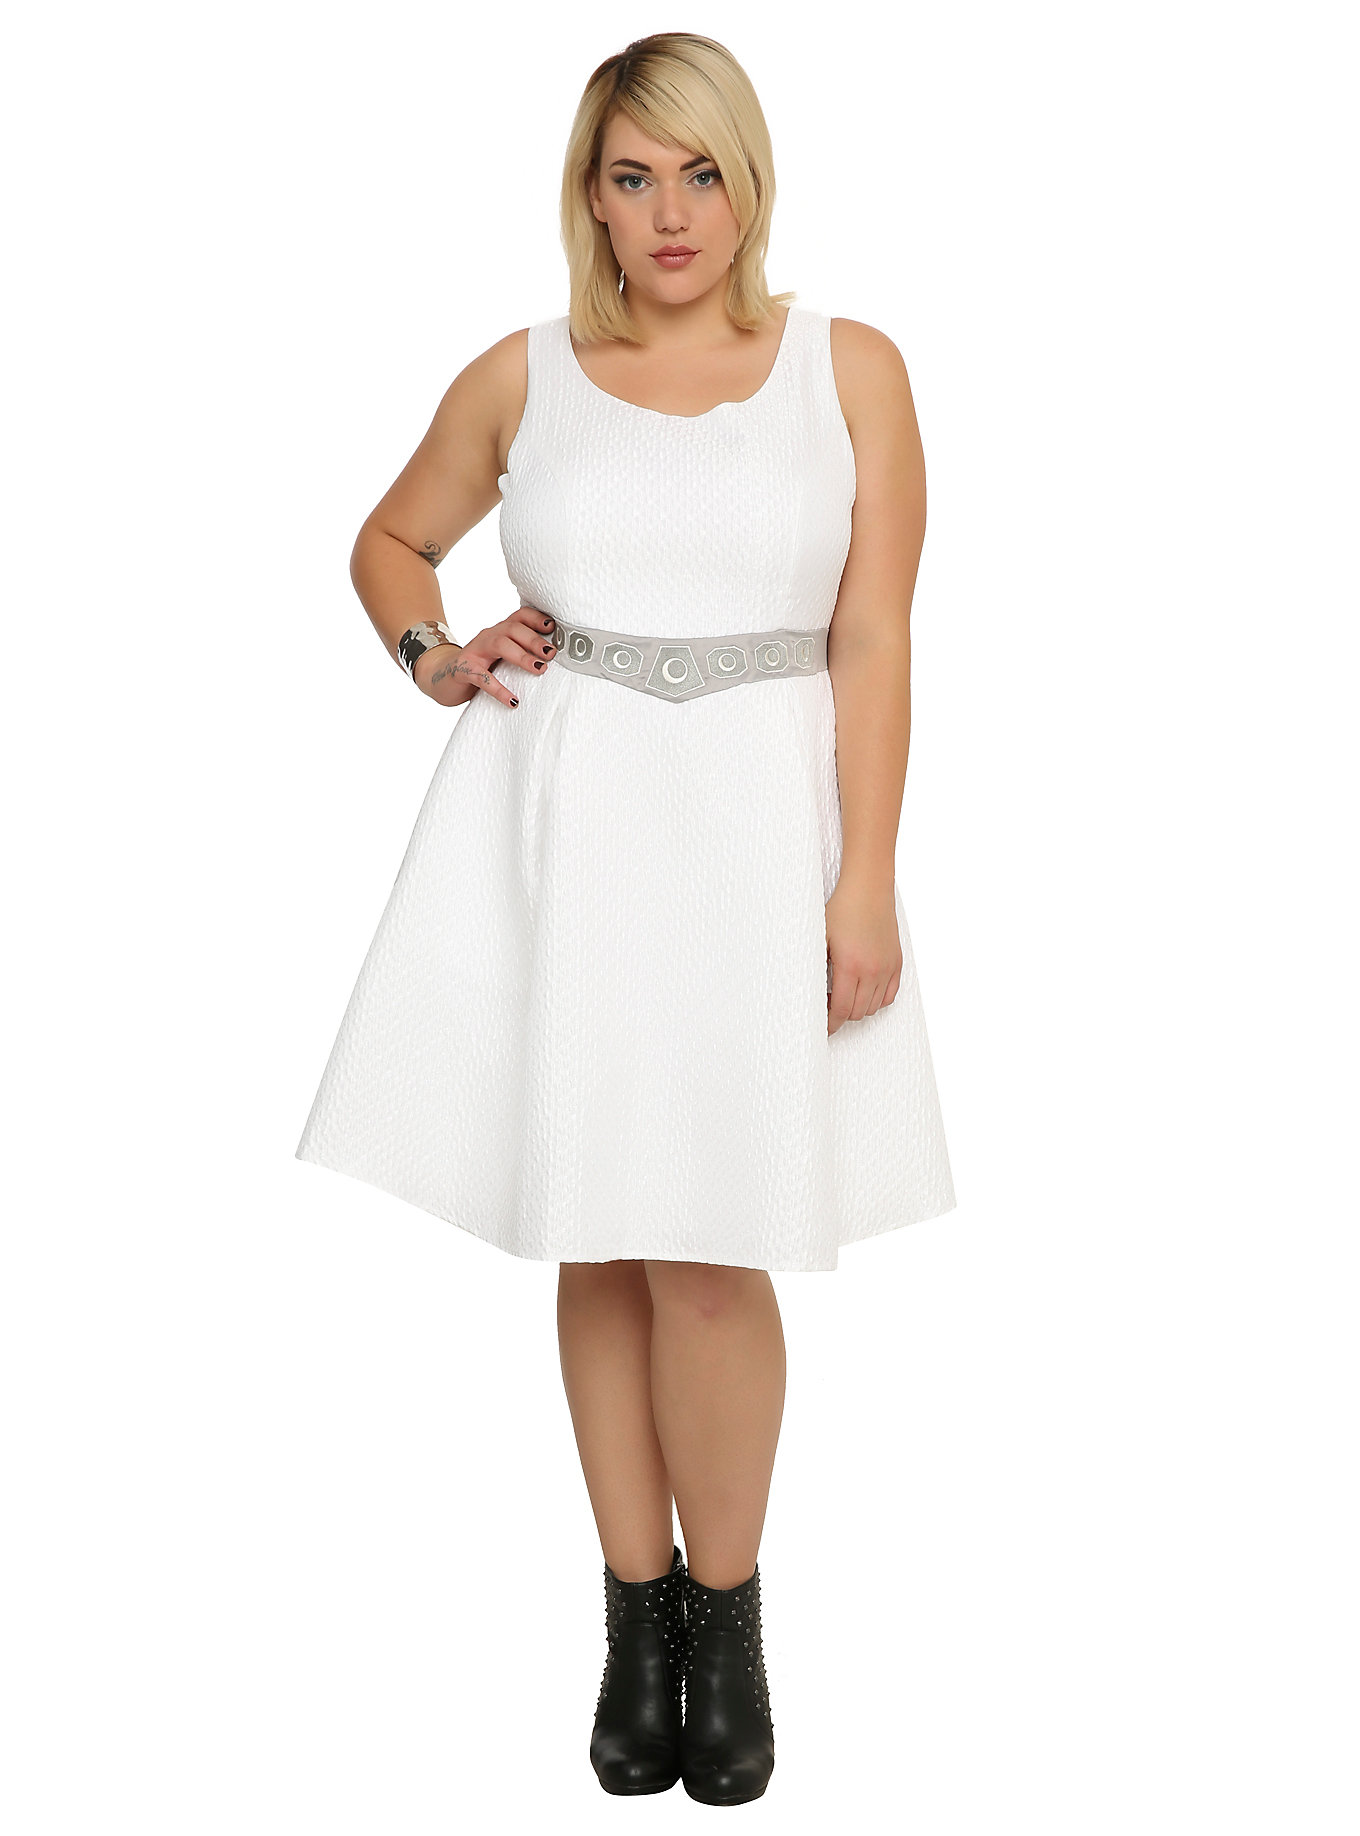 ac30a452e1 ... Hot Topic - women's plus size Princess Leia dress by Her Universe  (front)